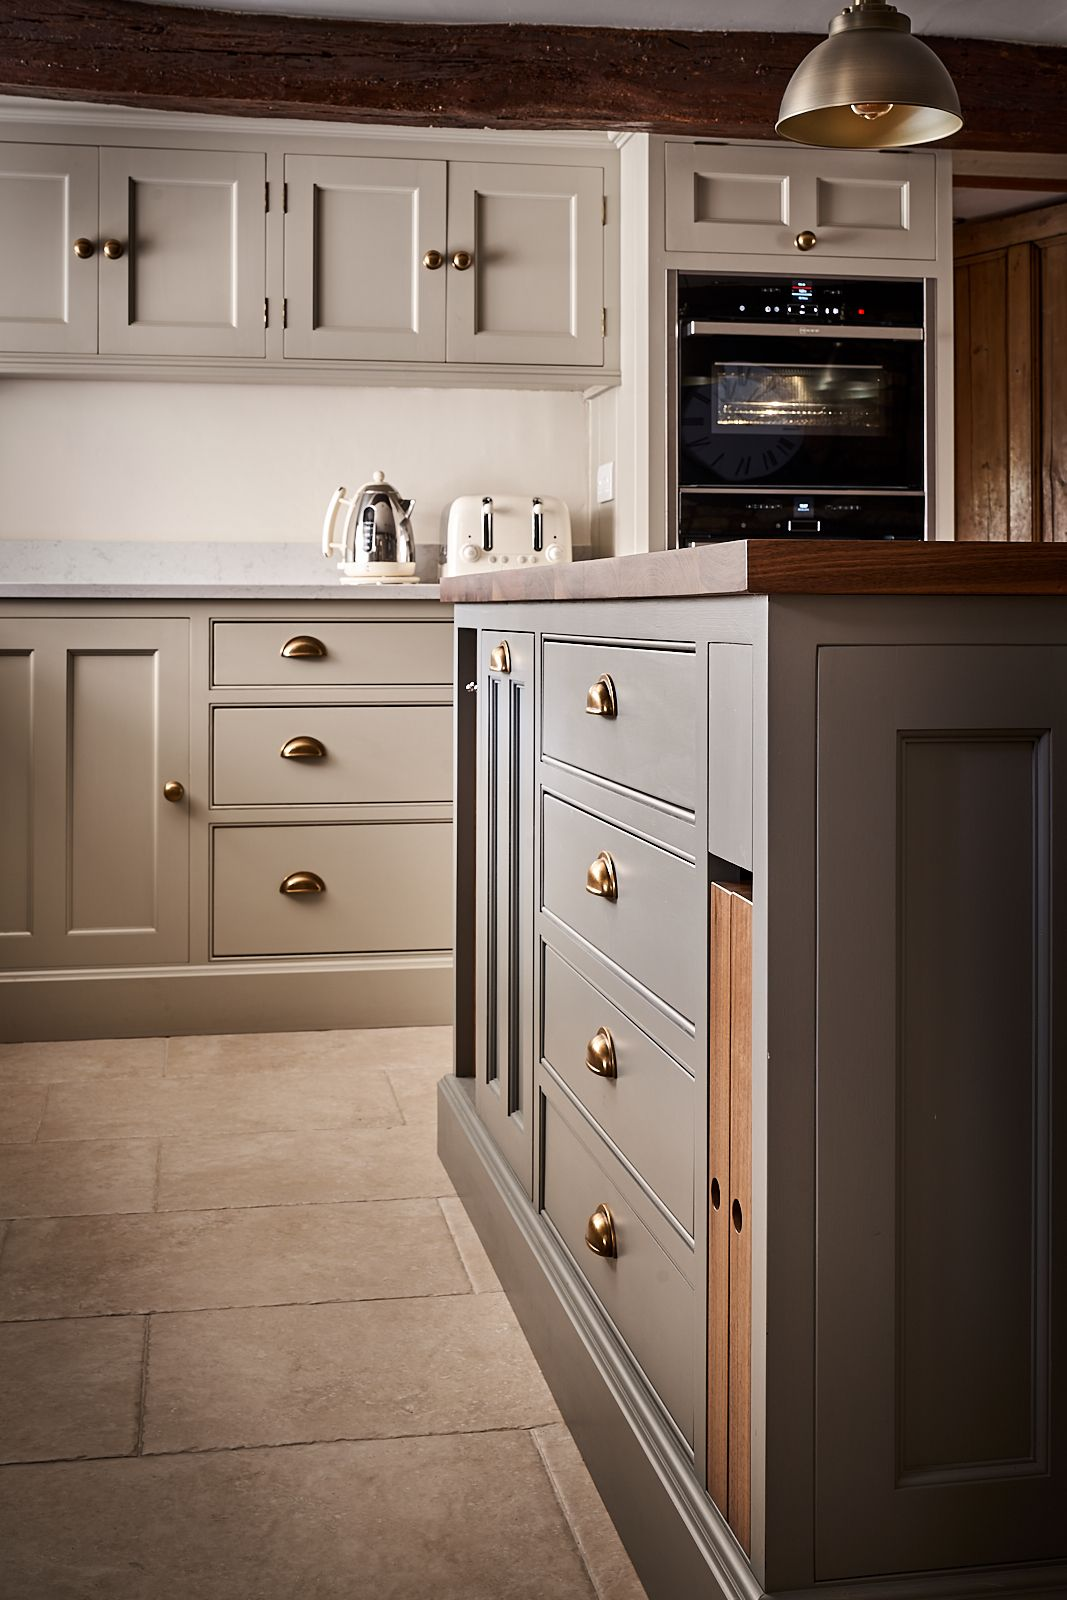 Best Bespoke Cottage Kitchen Painted In Zoffany Smoke And 400 x 300